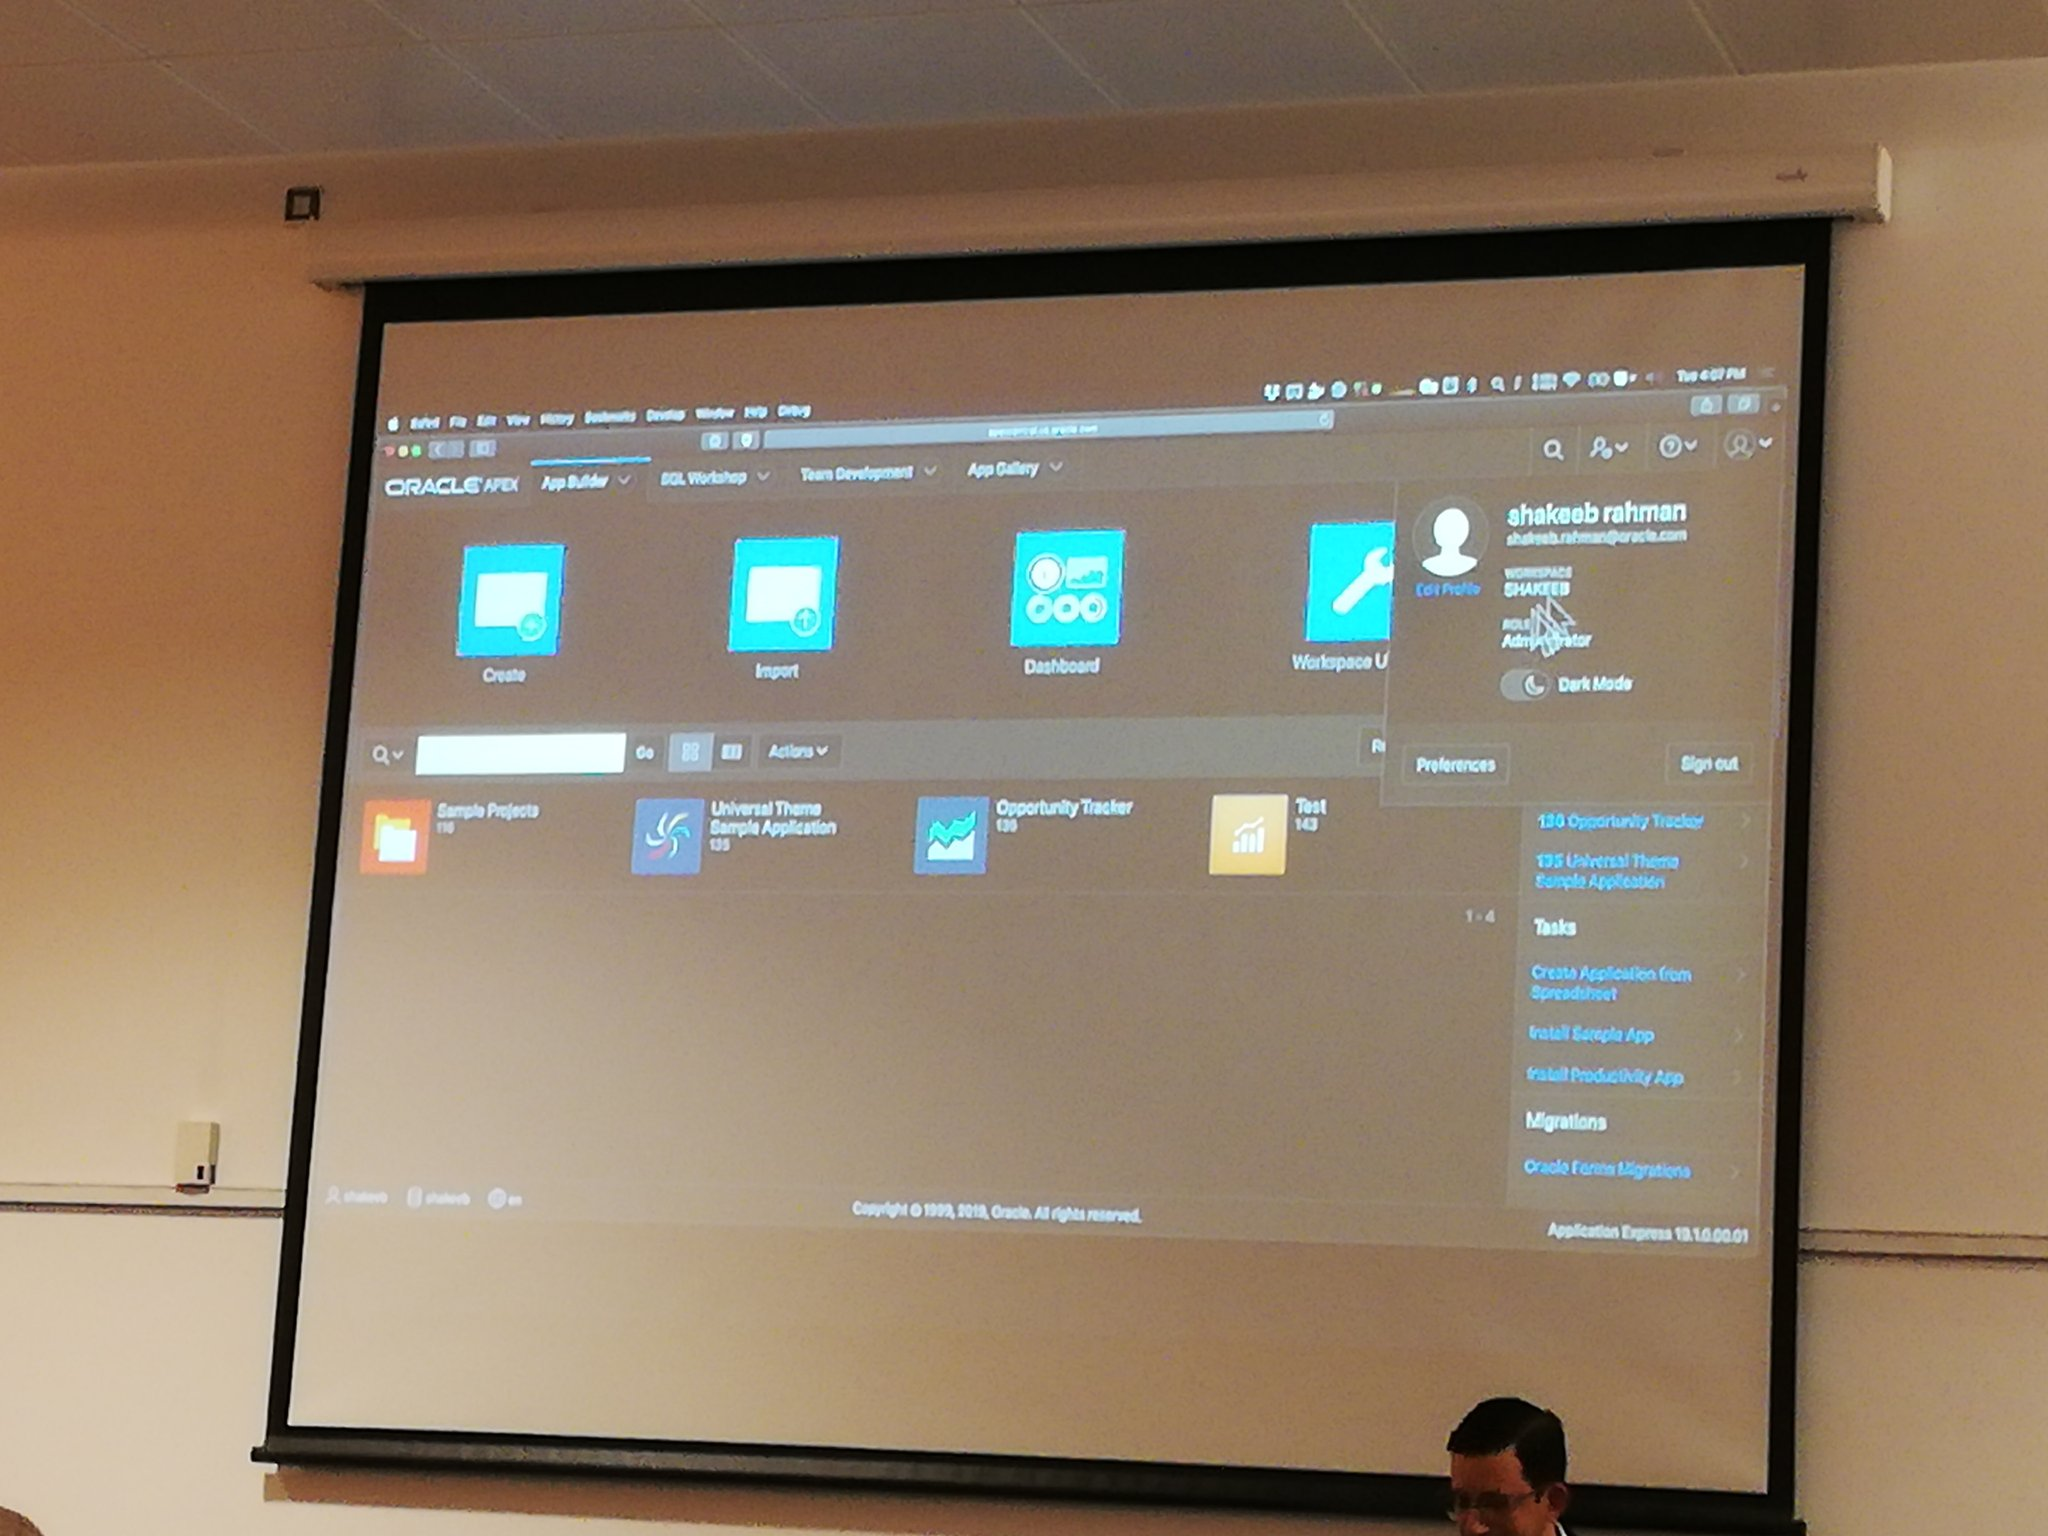 Some photos of Dark Mode in #orclapex 19.1 #ukoug_tech18  (1/2) https://t.co/5qIjWpRJmO